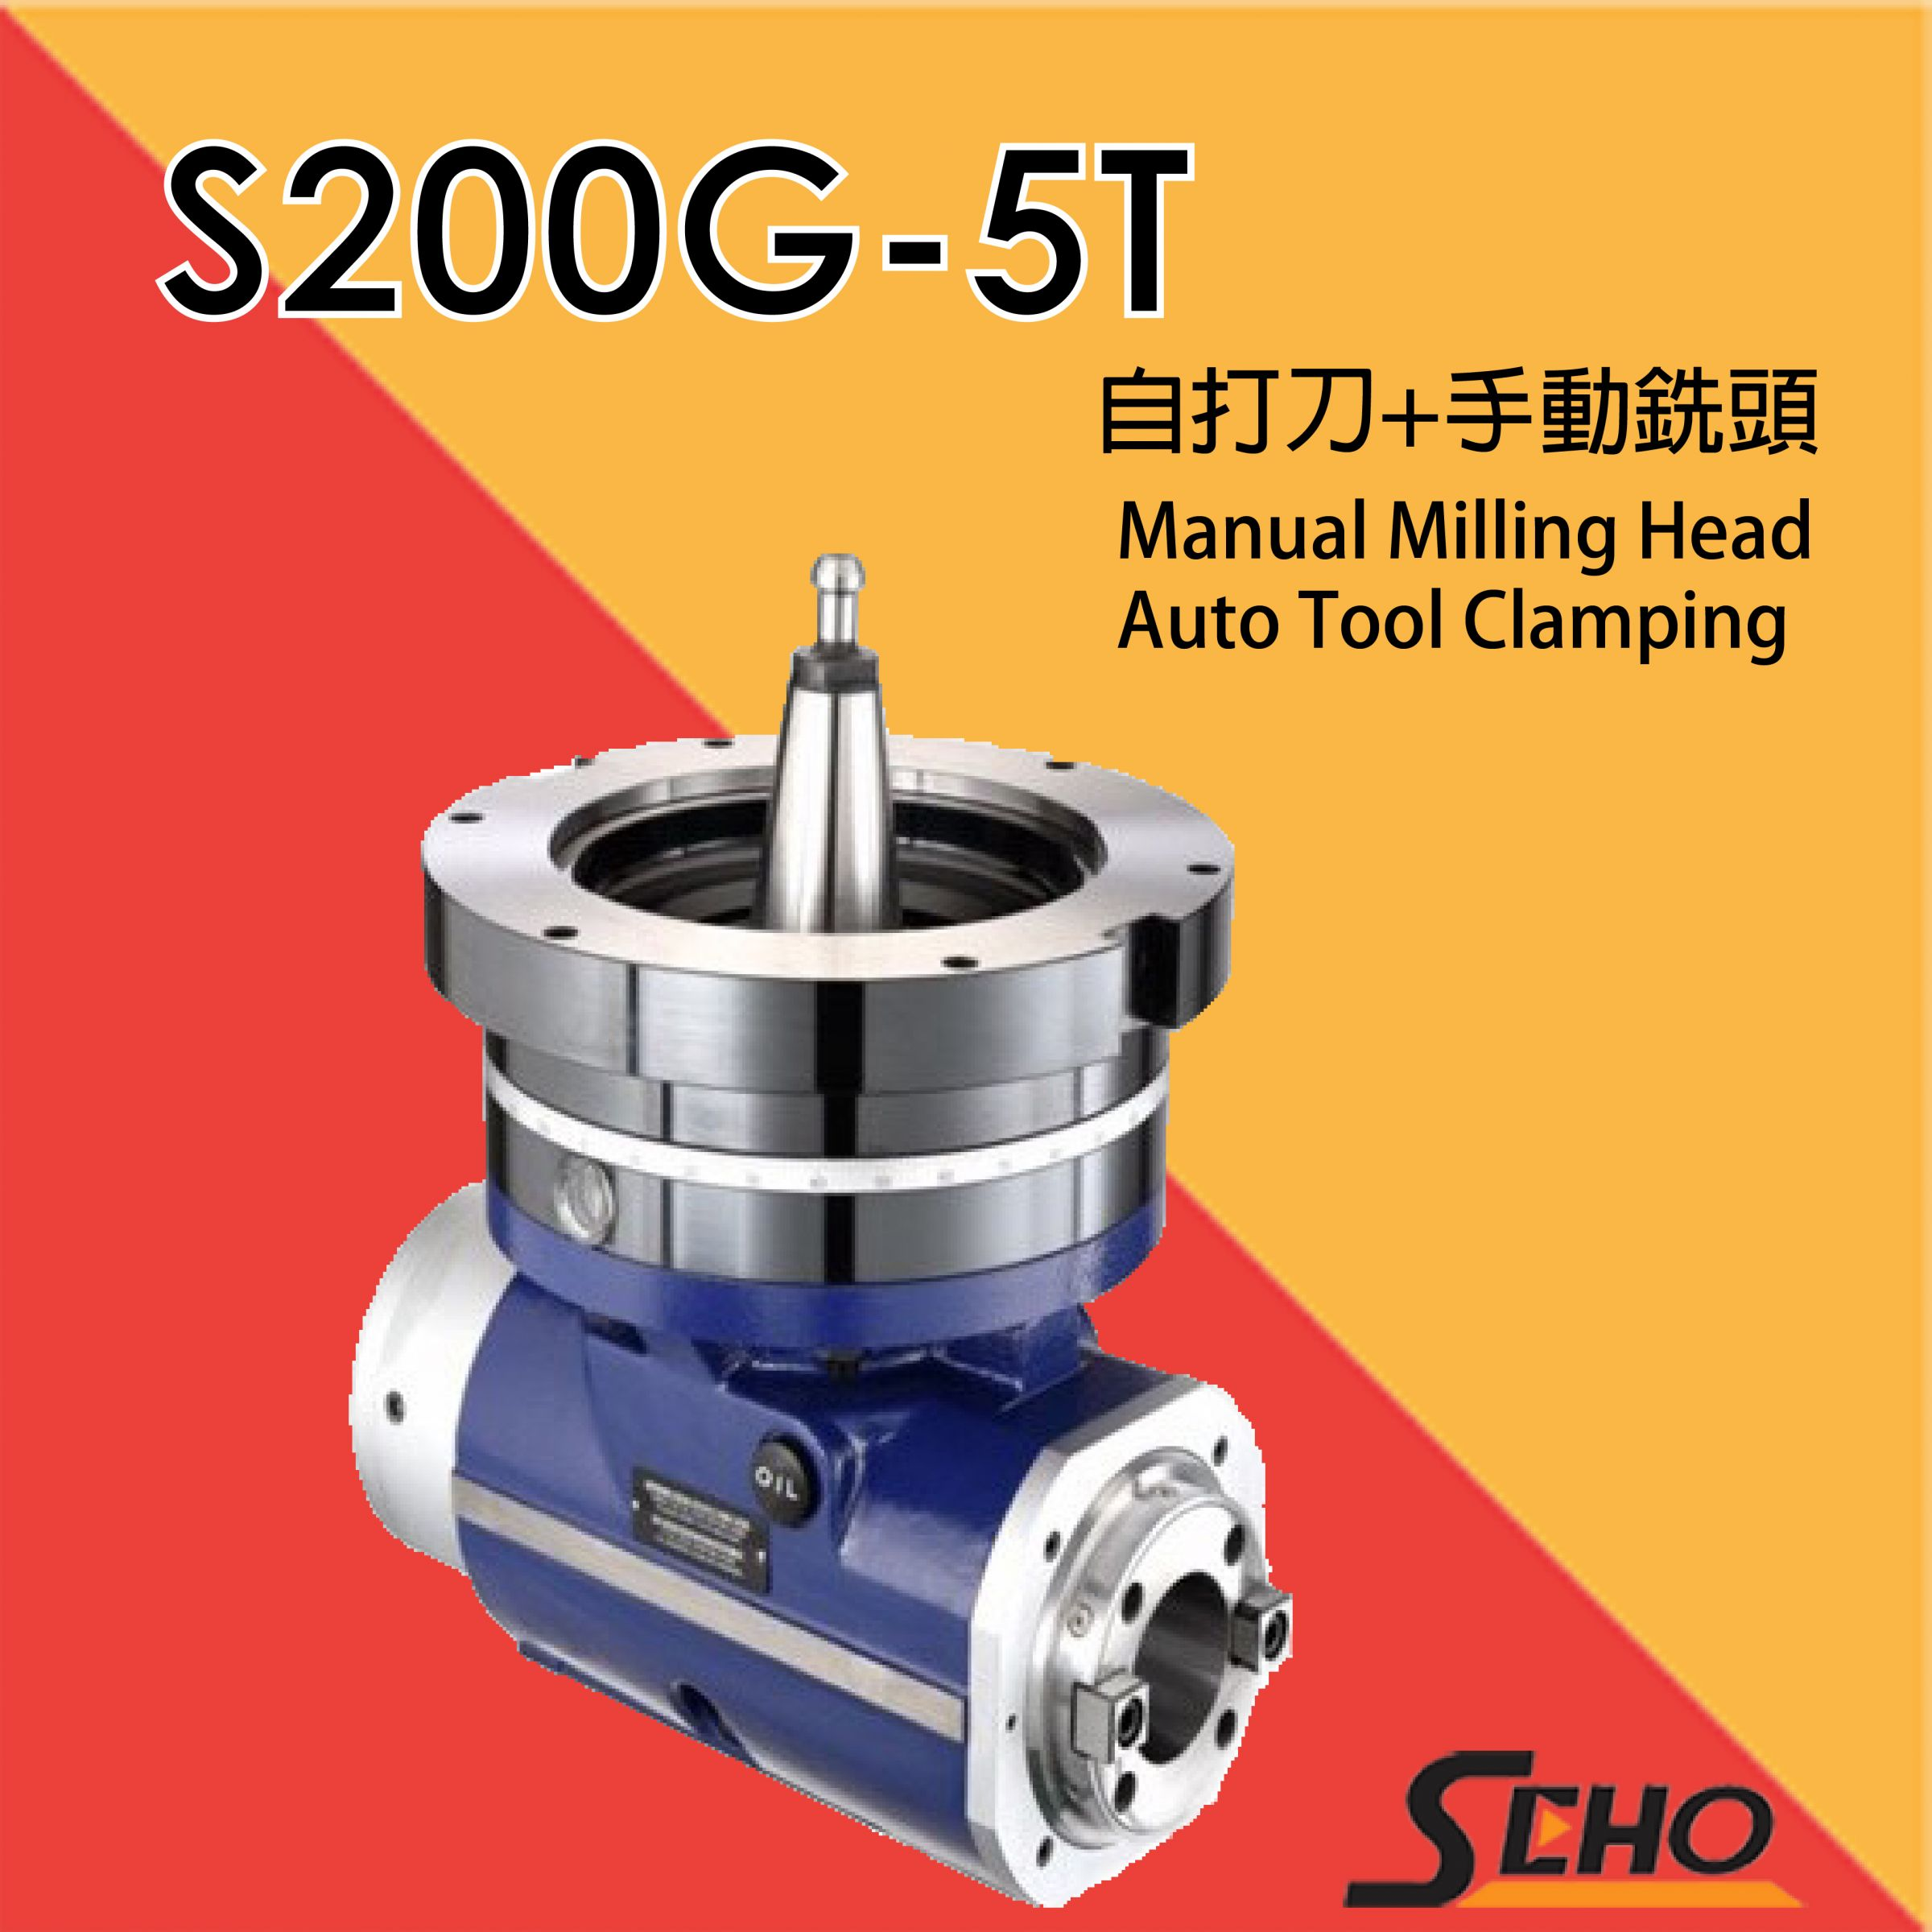 S200G-5T Manual milling head Auto tool clamping